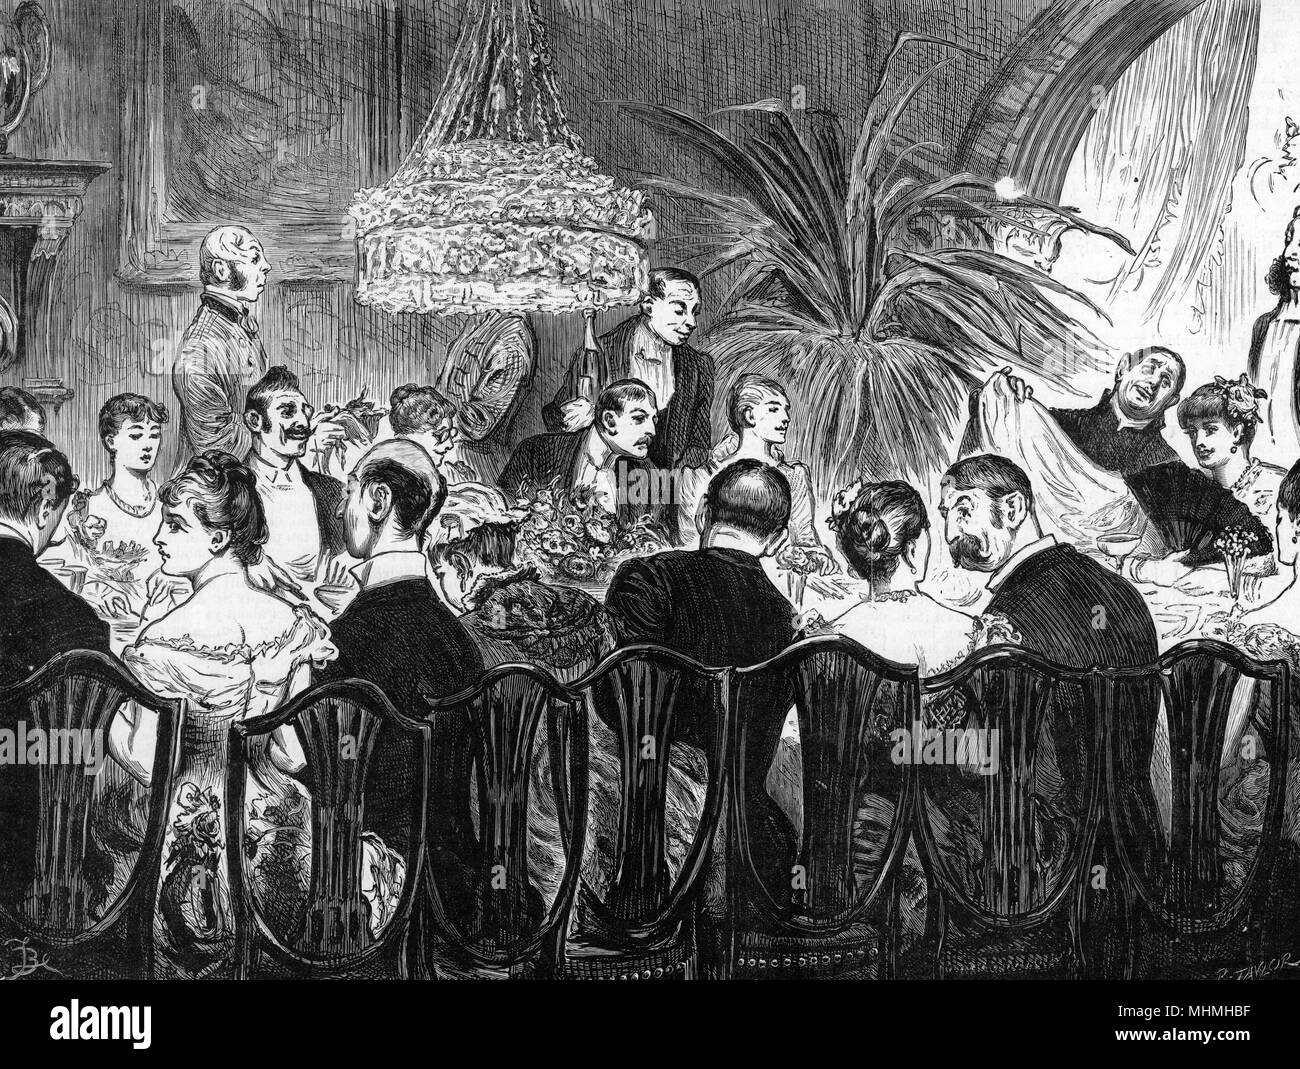 Guests indulge in food and conversation at a good-natured dinner party       Date: 1885 - Stock Image